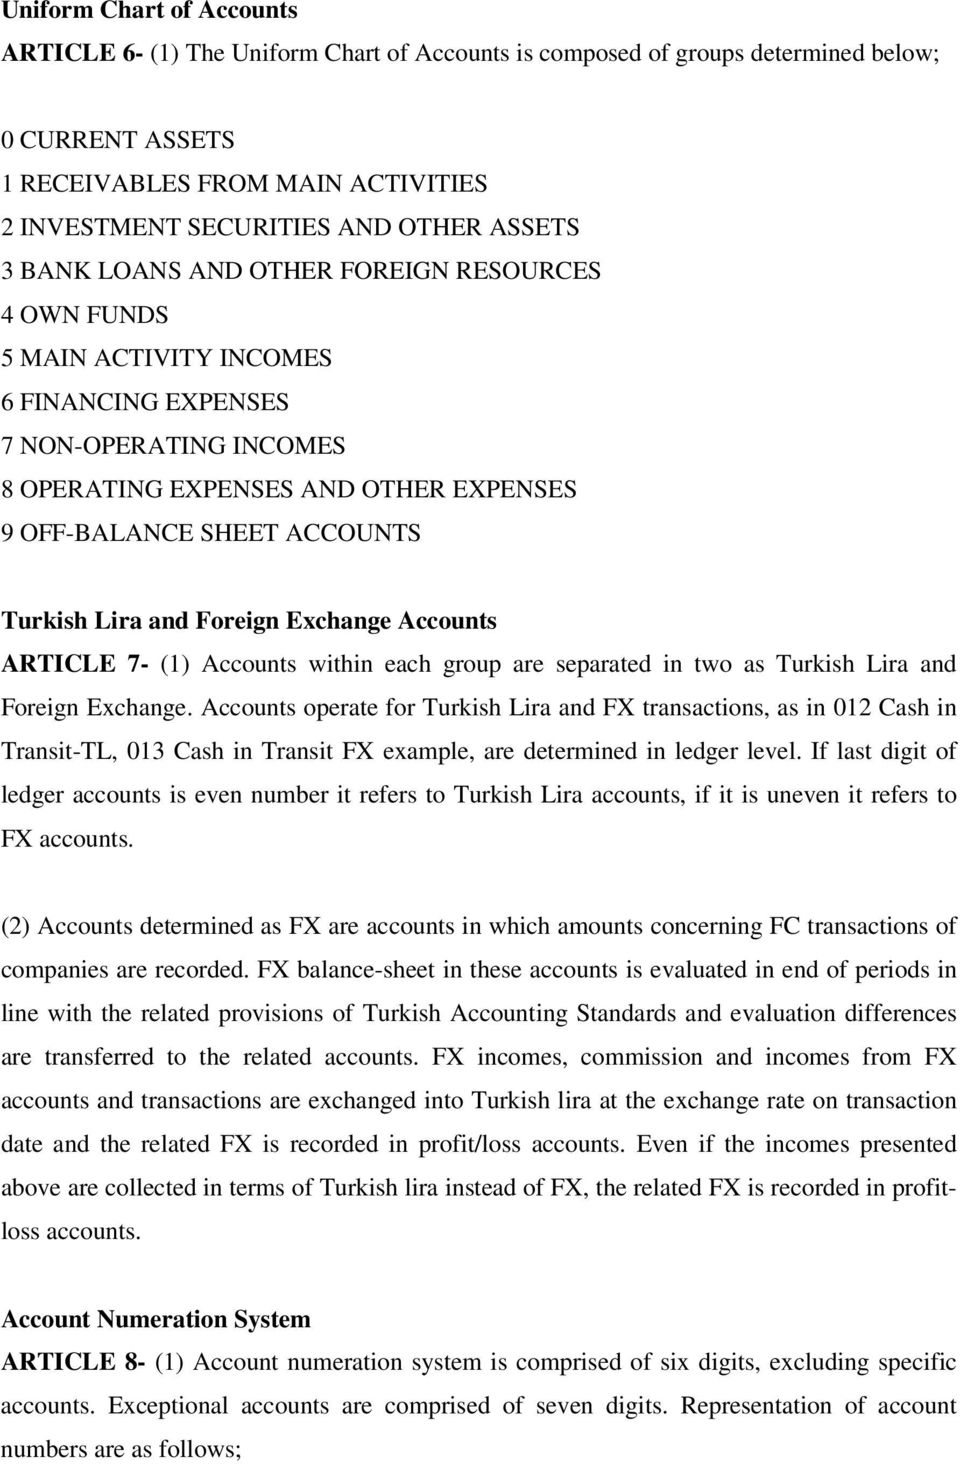 Turkish Lira and Foreign Exchange Accounts ARTICLE 7- (1) Accounts within each group are separated in two as Turkish Lira and Foreign Exchange.